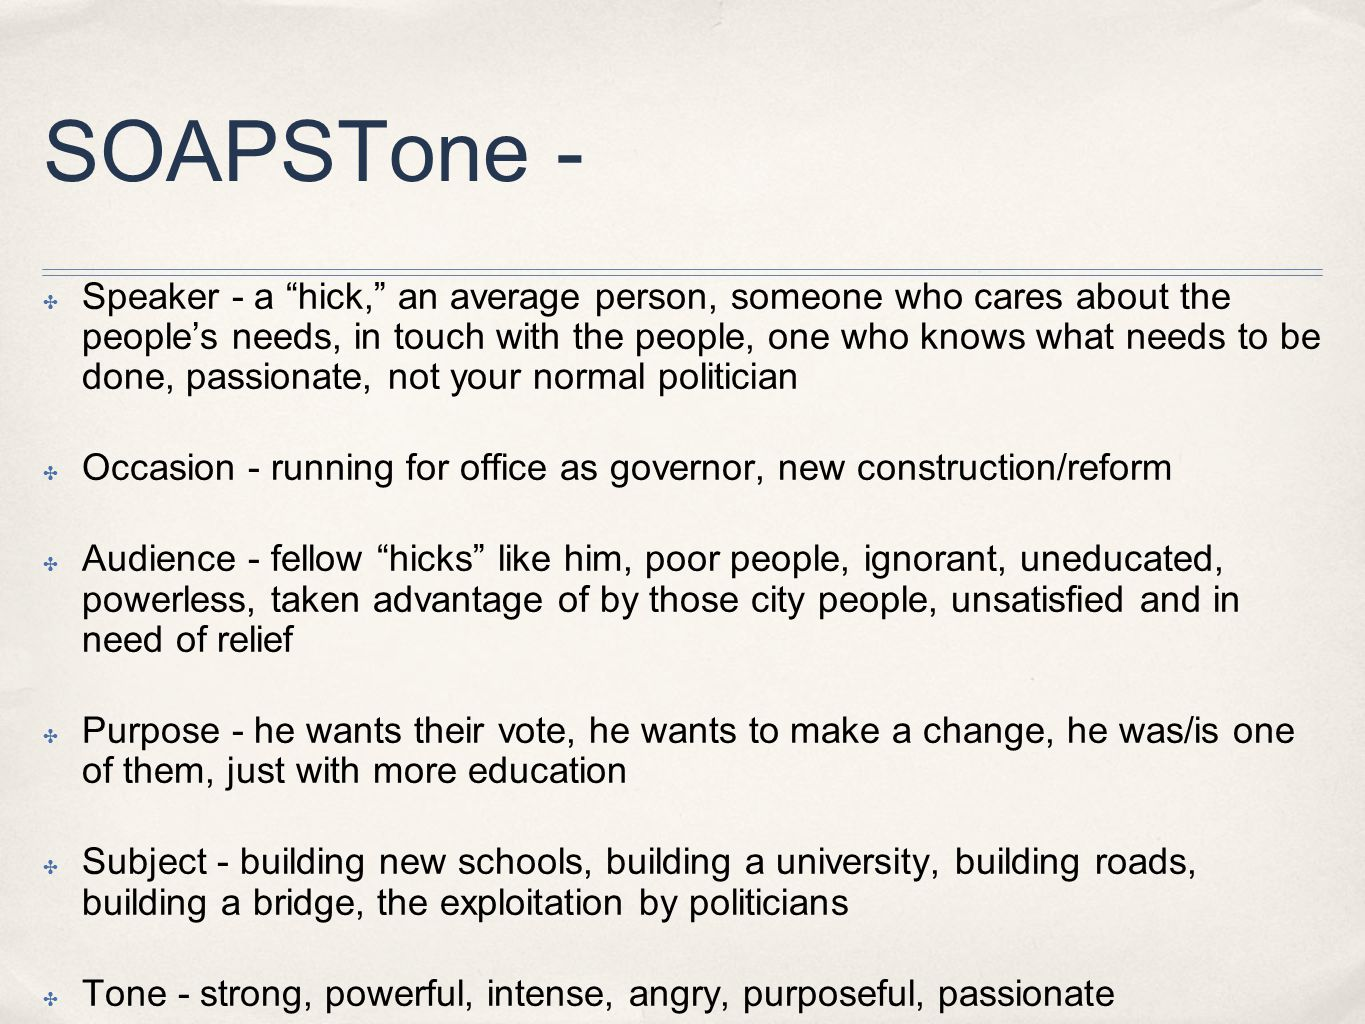 SOAPSTone - ✤ Speaker - a hick, an average person, someone who cares about the people's needs, in touch with the people, one who knows what needs to be done, passionate, not your normal politician ✤ Occasion - running for office as governor, new construction/reform ✤ Audience - fellow hicks like him, poor people, ignorant, uneducated, powerless, taken advantage of by those city people, unsatisfied and in need of relief ✤ Purpose - he wants their vote, he wants to make a change, he was/is one of them, just with more education ✤ Subject - building new schools, building a university, building roads, building a bridge, the exploitation by politicians ✤ Tone - strong, powerful, intense, angry, purposeful, passionate